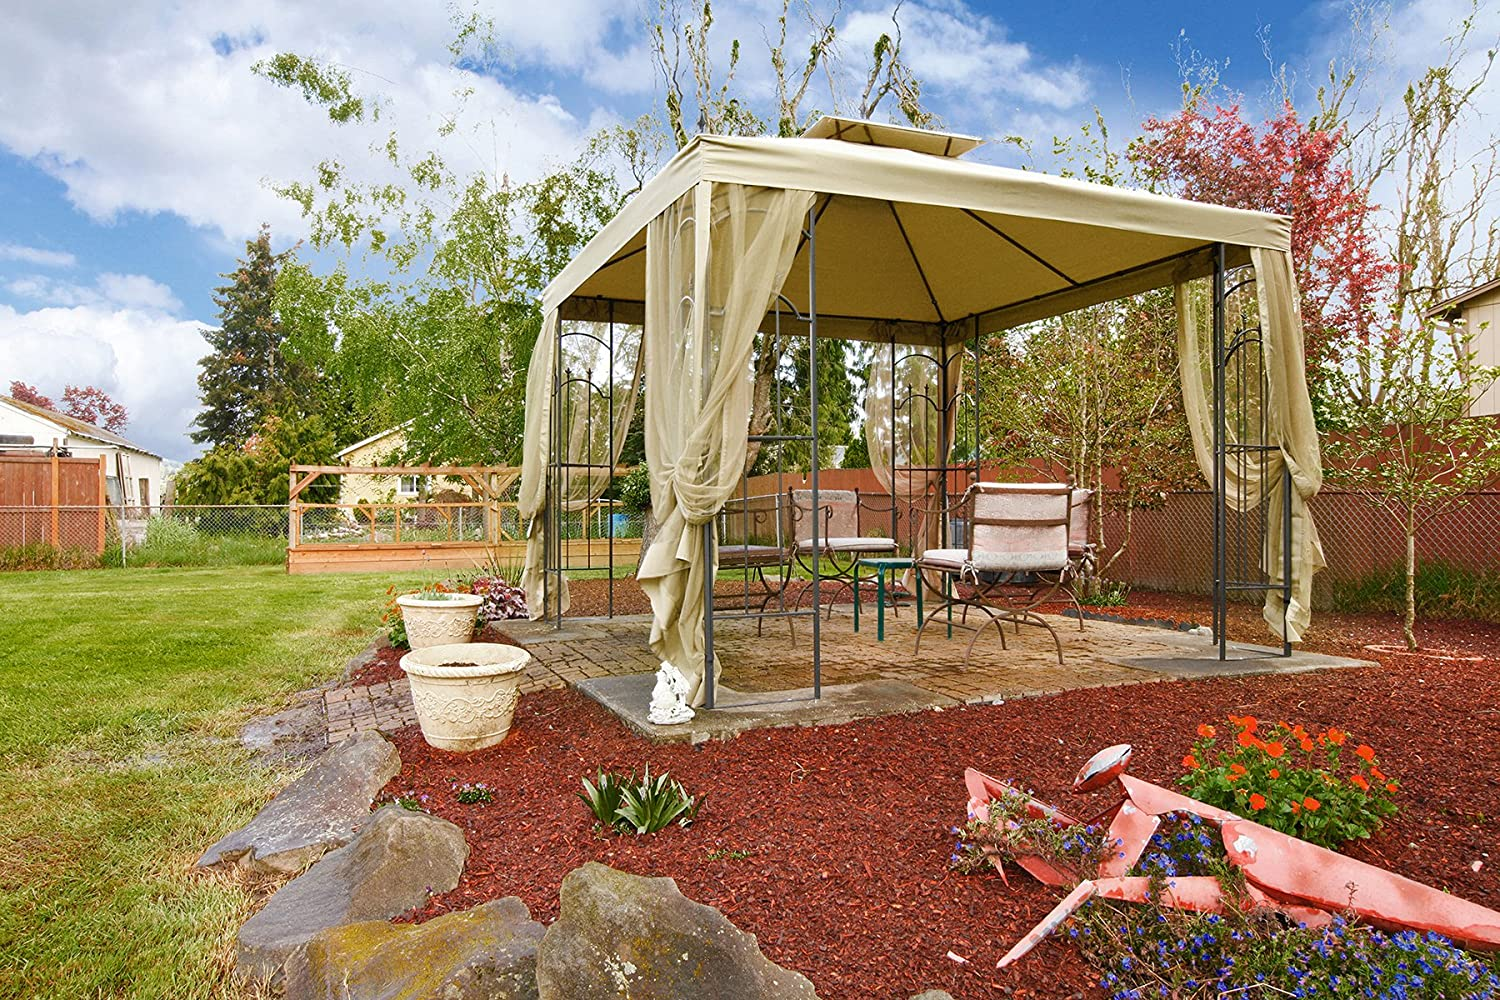 Amazon.com: Kenley 2-Tier 10x10 Replacement Gazebo Canopy Awning ...